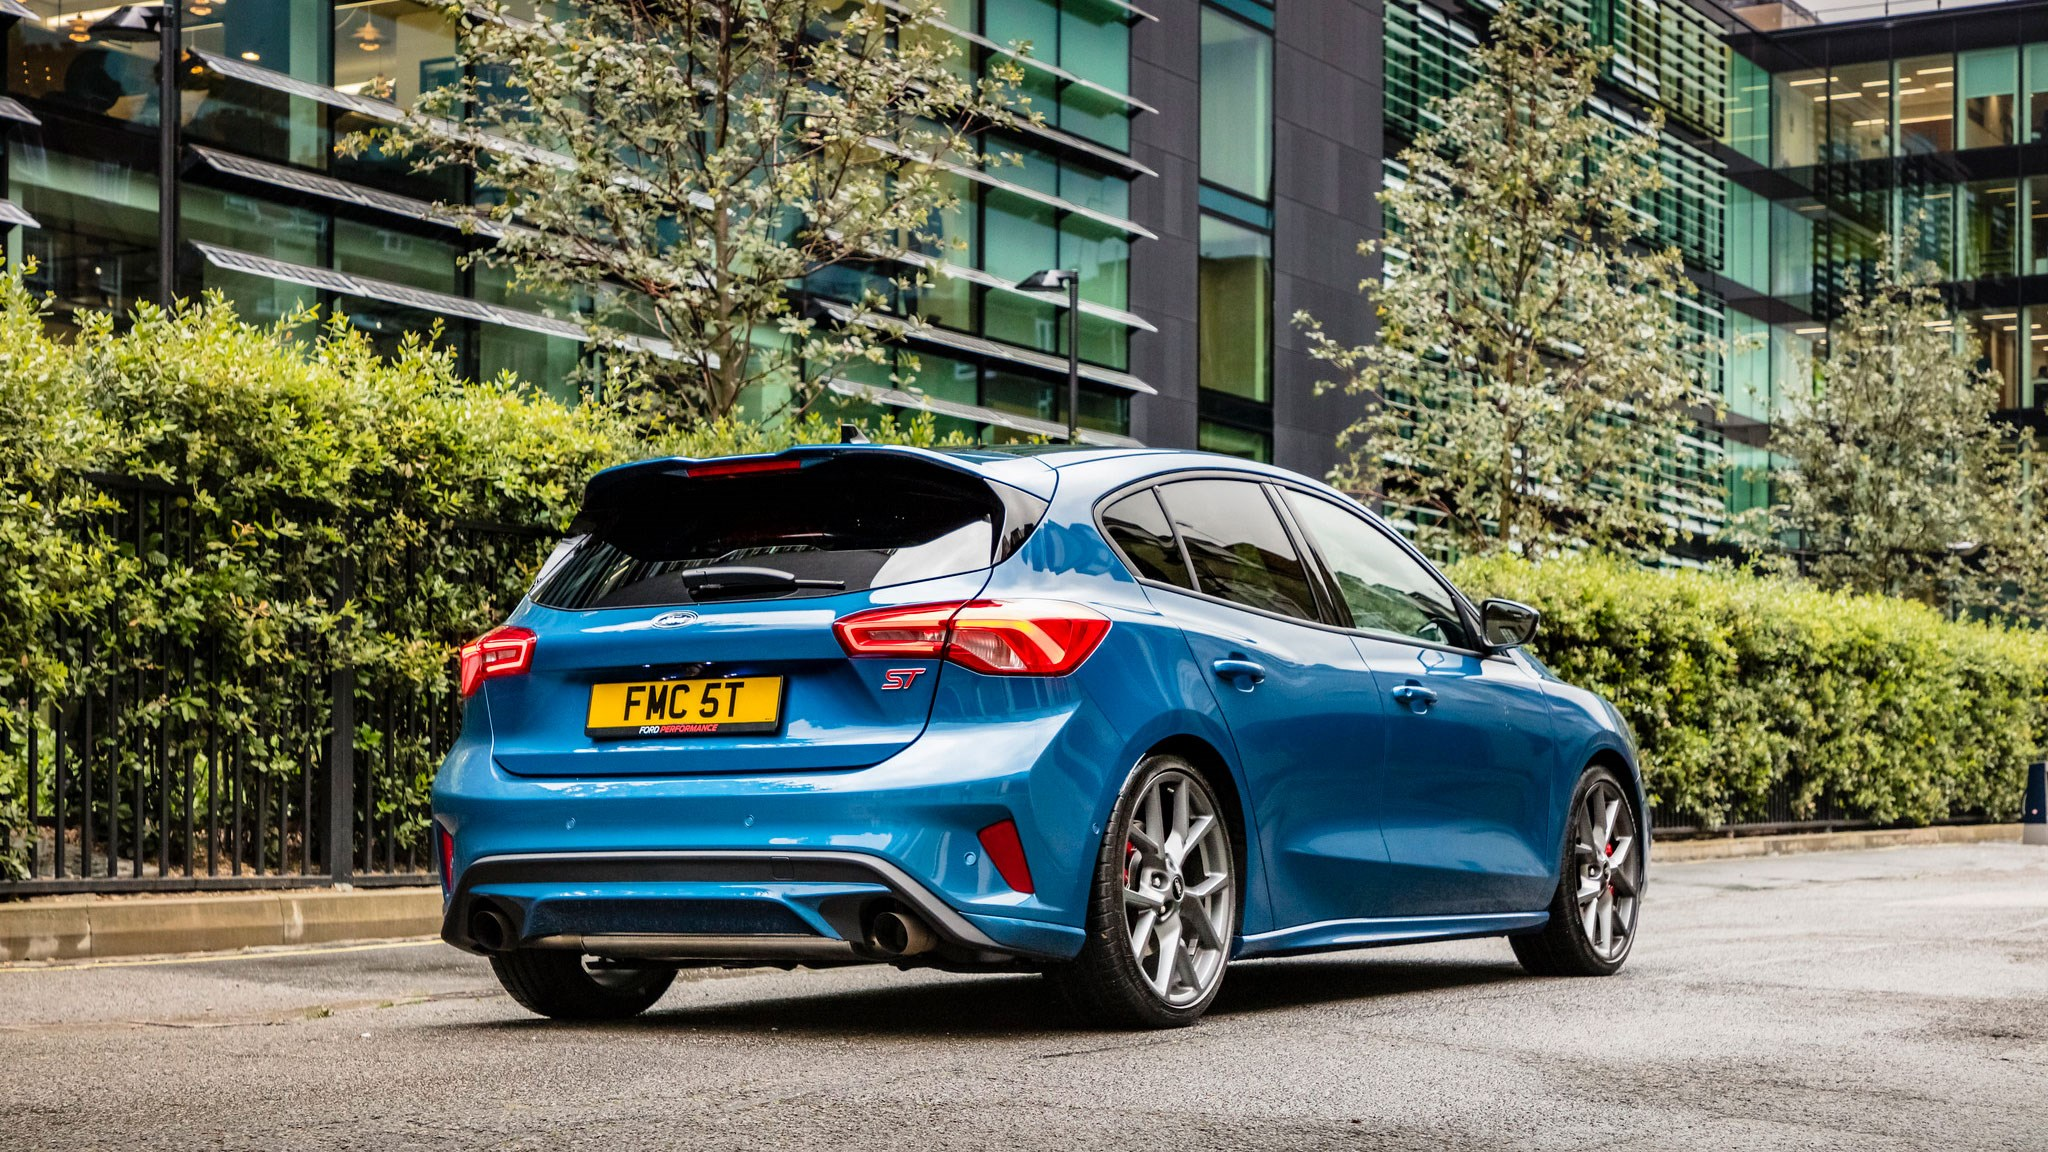 Ford Focus St Hot Hatch Gets An Auto Box Car Magazine